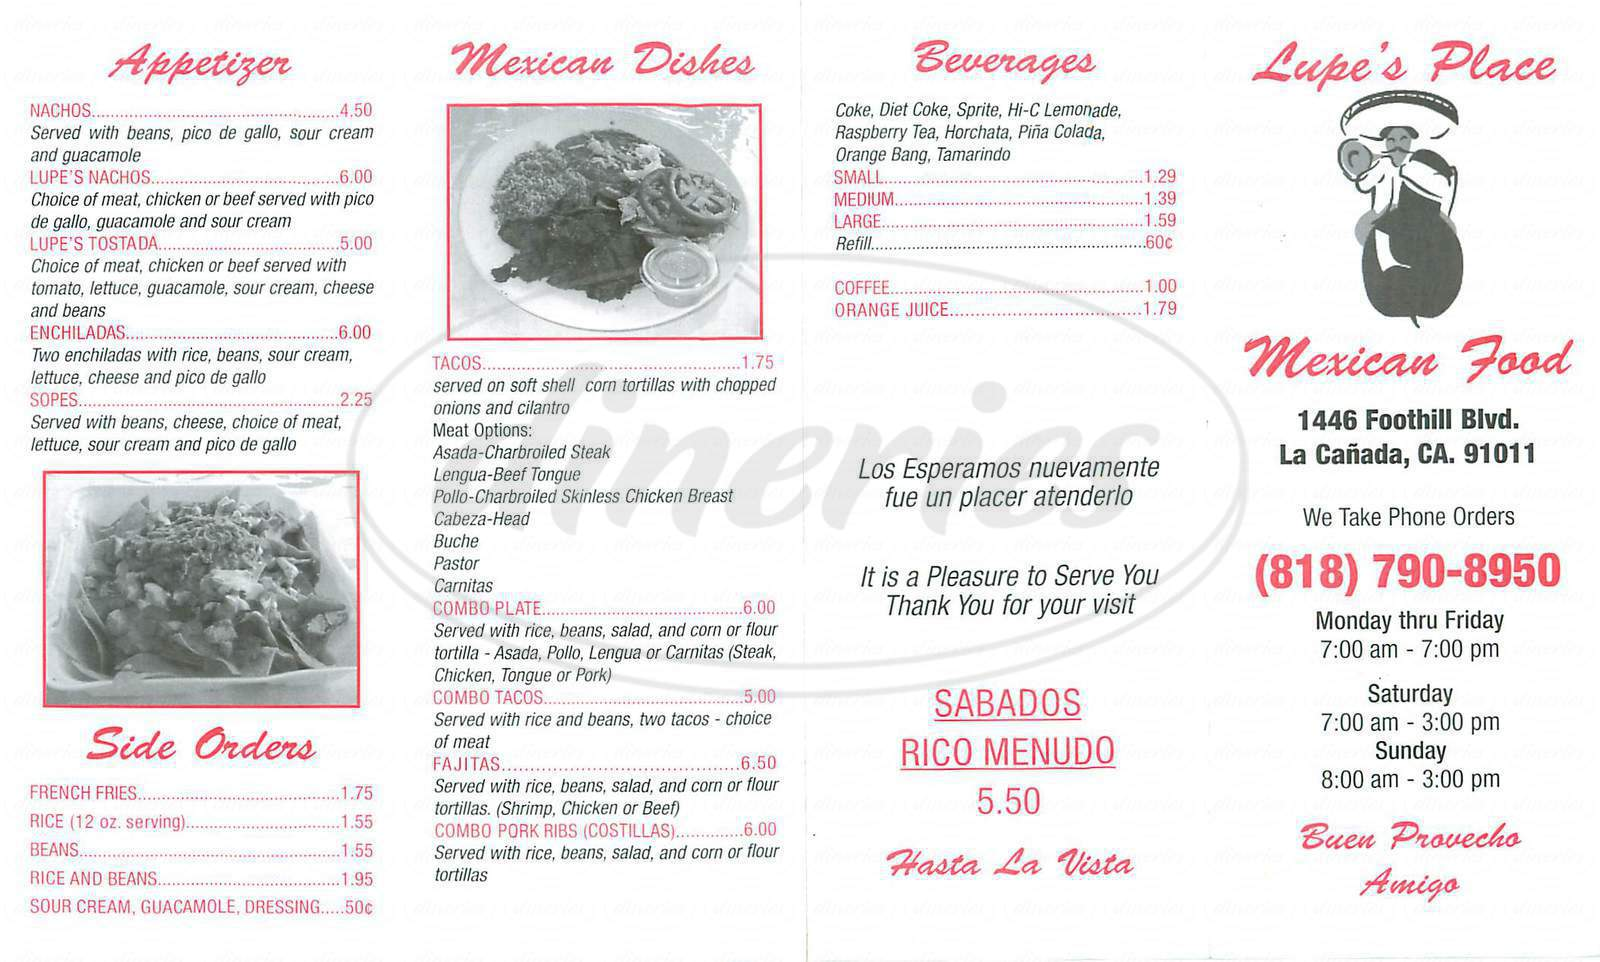 menu for Lupe's Place